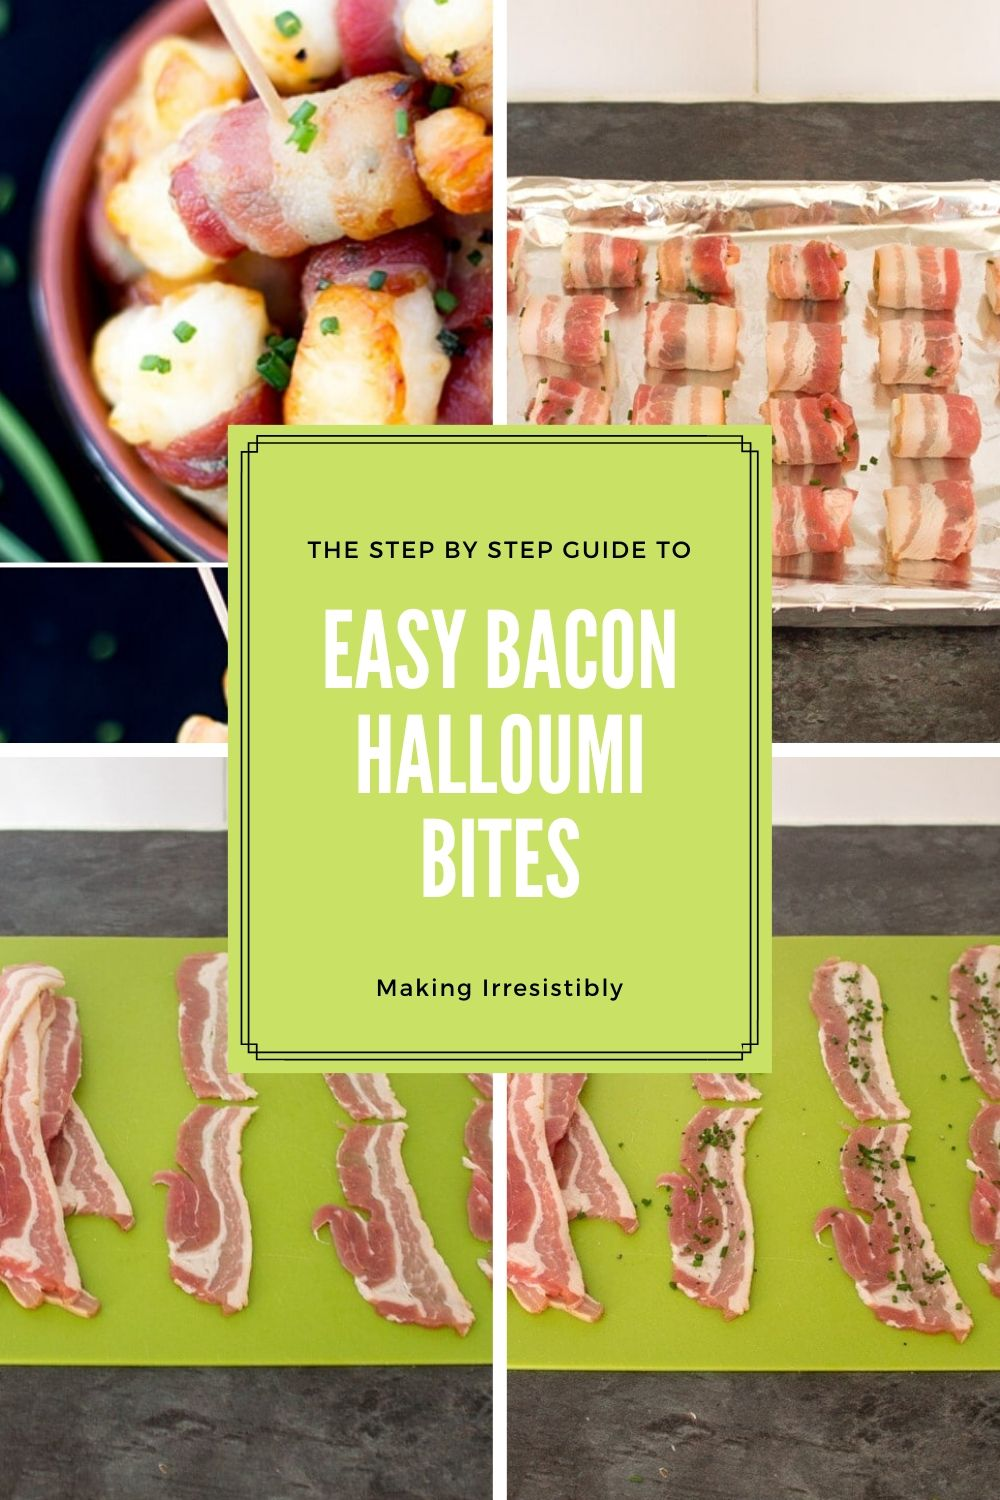 The Step by Step Guide to Making Irresistibly Easy Bacon Halloumi Bites